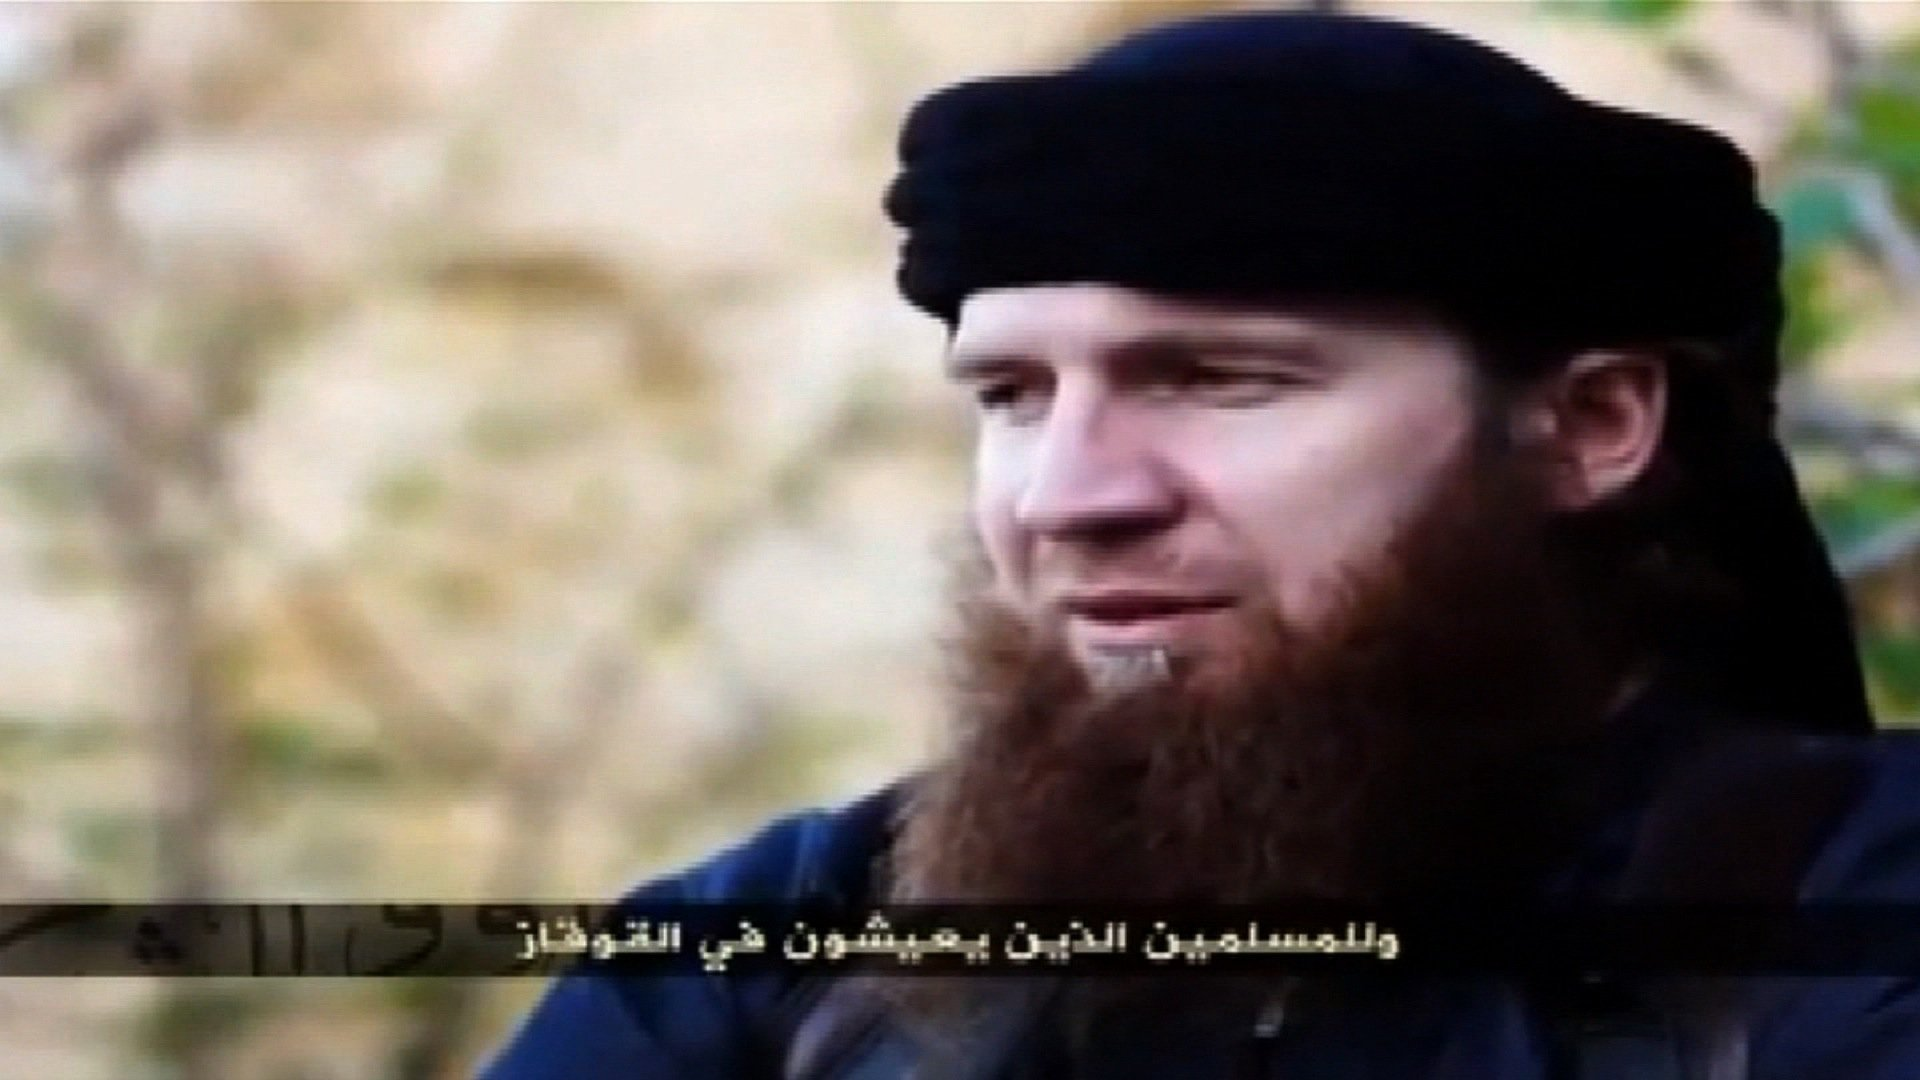 Two U.S. officials told CNN that the Obama administration has confirmed that ISIS senior operative Omar al-Shishani is dead.